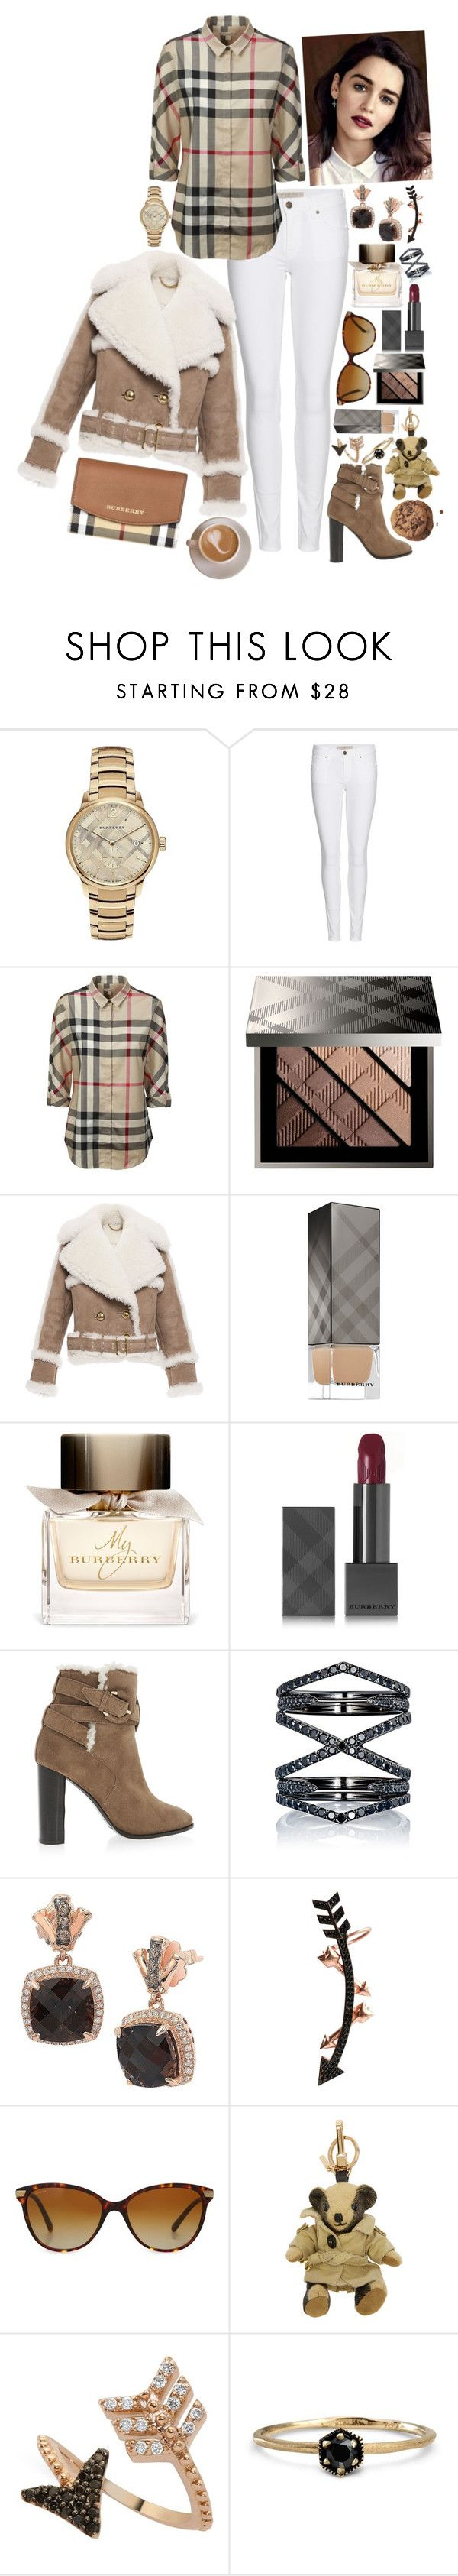 """""""7 Years - Cover by Jasmine Thompson"""" by leo8august ❤ liked on Polyvore featuring Burberry, Eva Fehren, LE VIAN, Wild Hearts, Bee Goddess and Satomi Kawakita"""